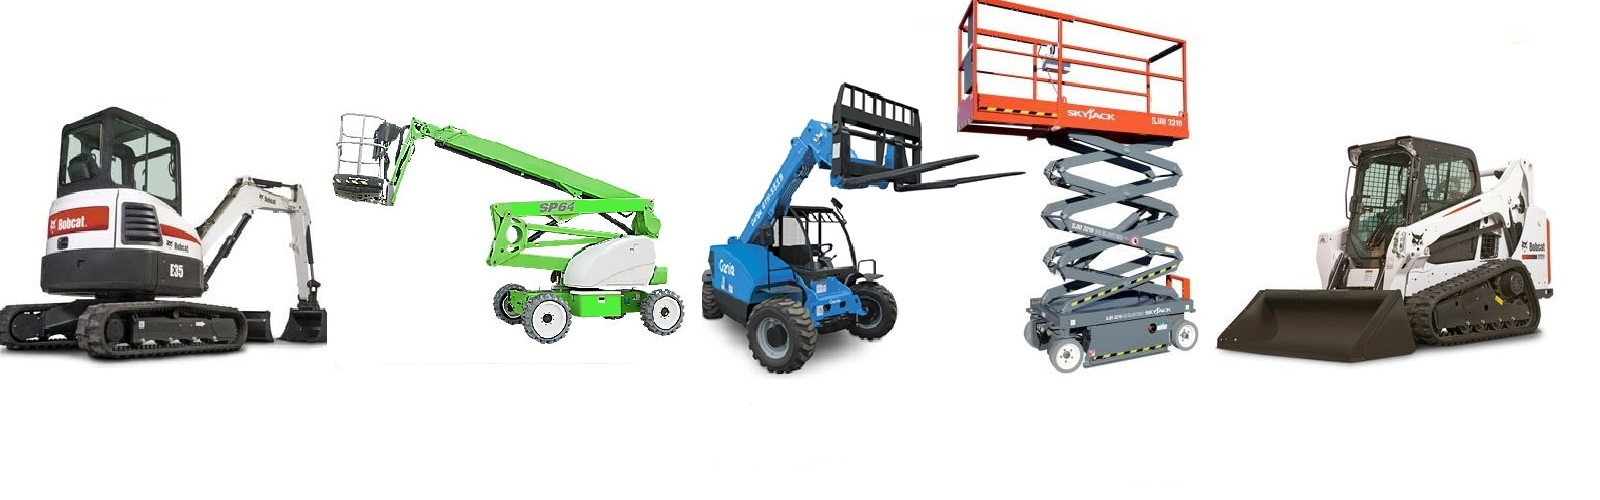 Equipment rentals in Eunice / Opelousas Louisiana